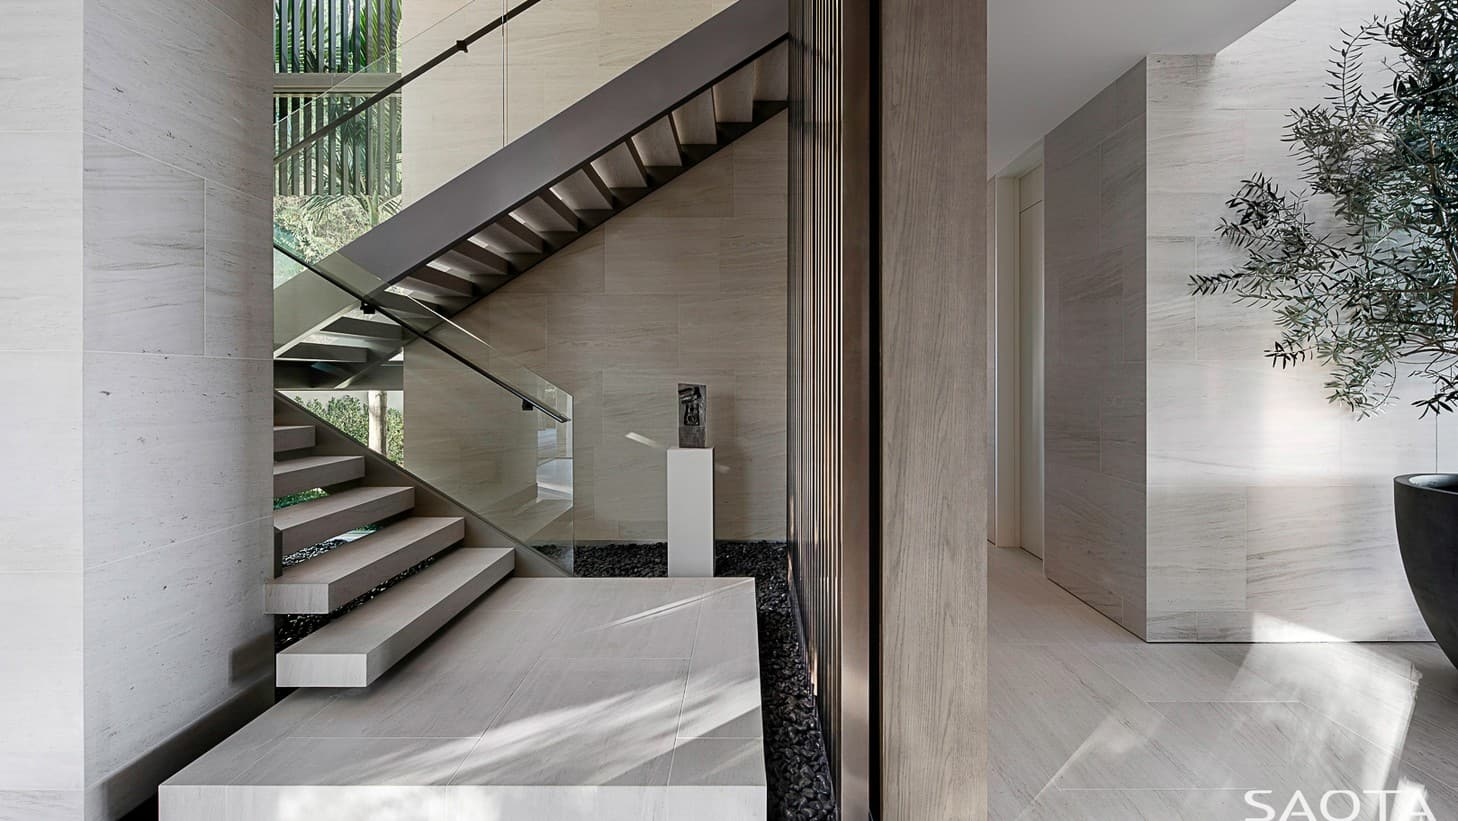 Another look of the staircase featuring its modern design. Photo Credit: Adam Letch